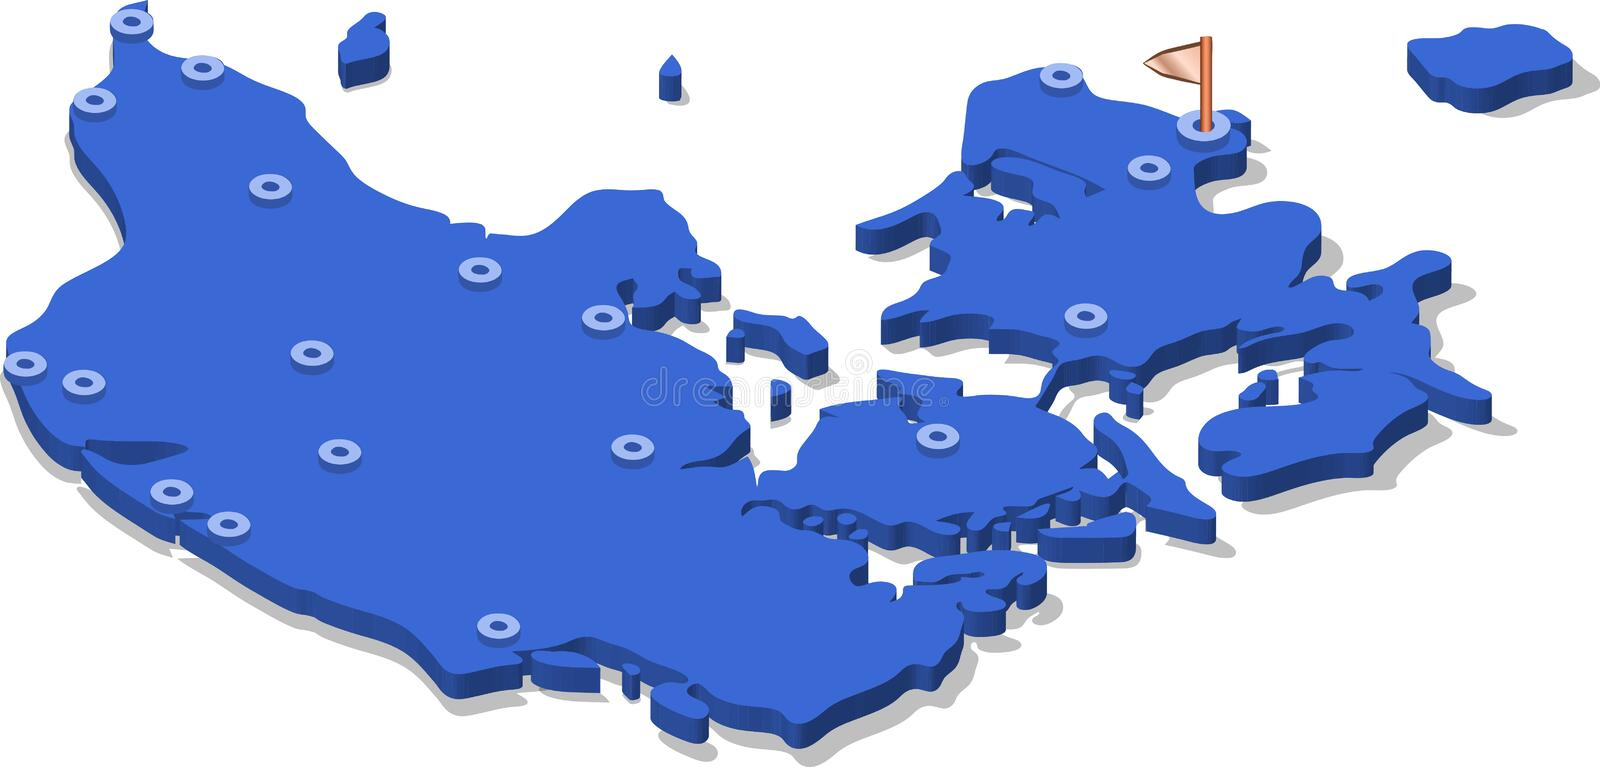 3d isometric view map of Denmark with blue surface and cities. Isolated, white background stock illustration